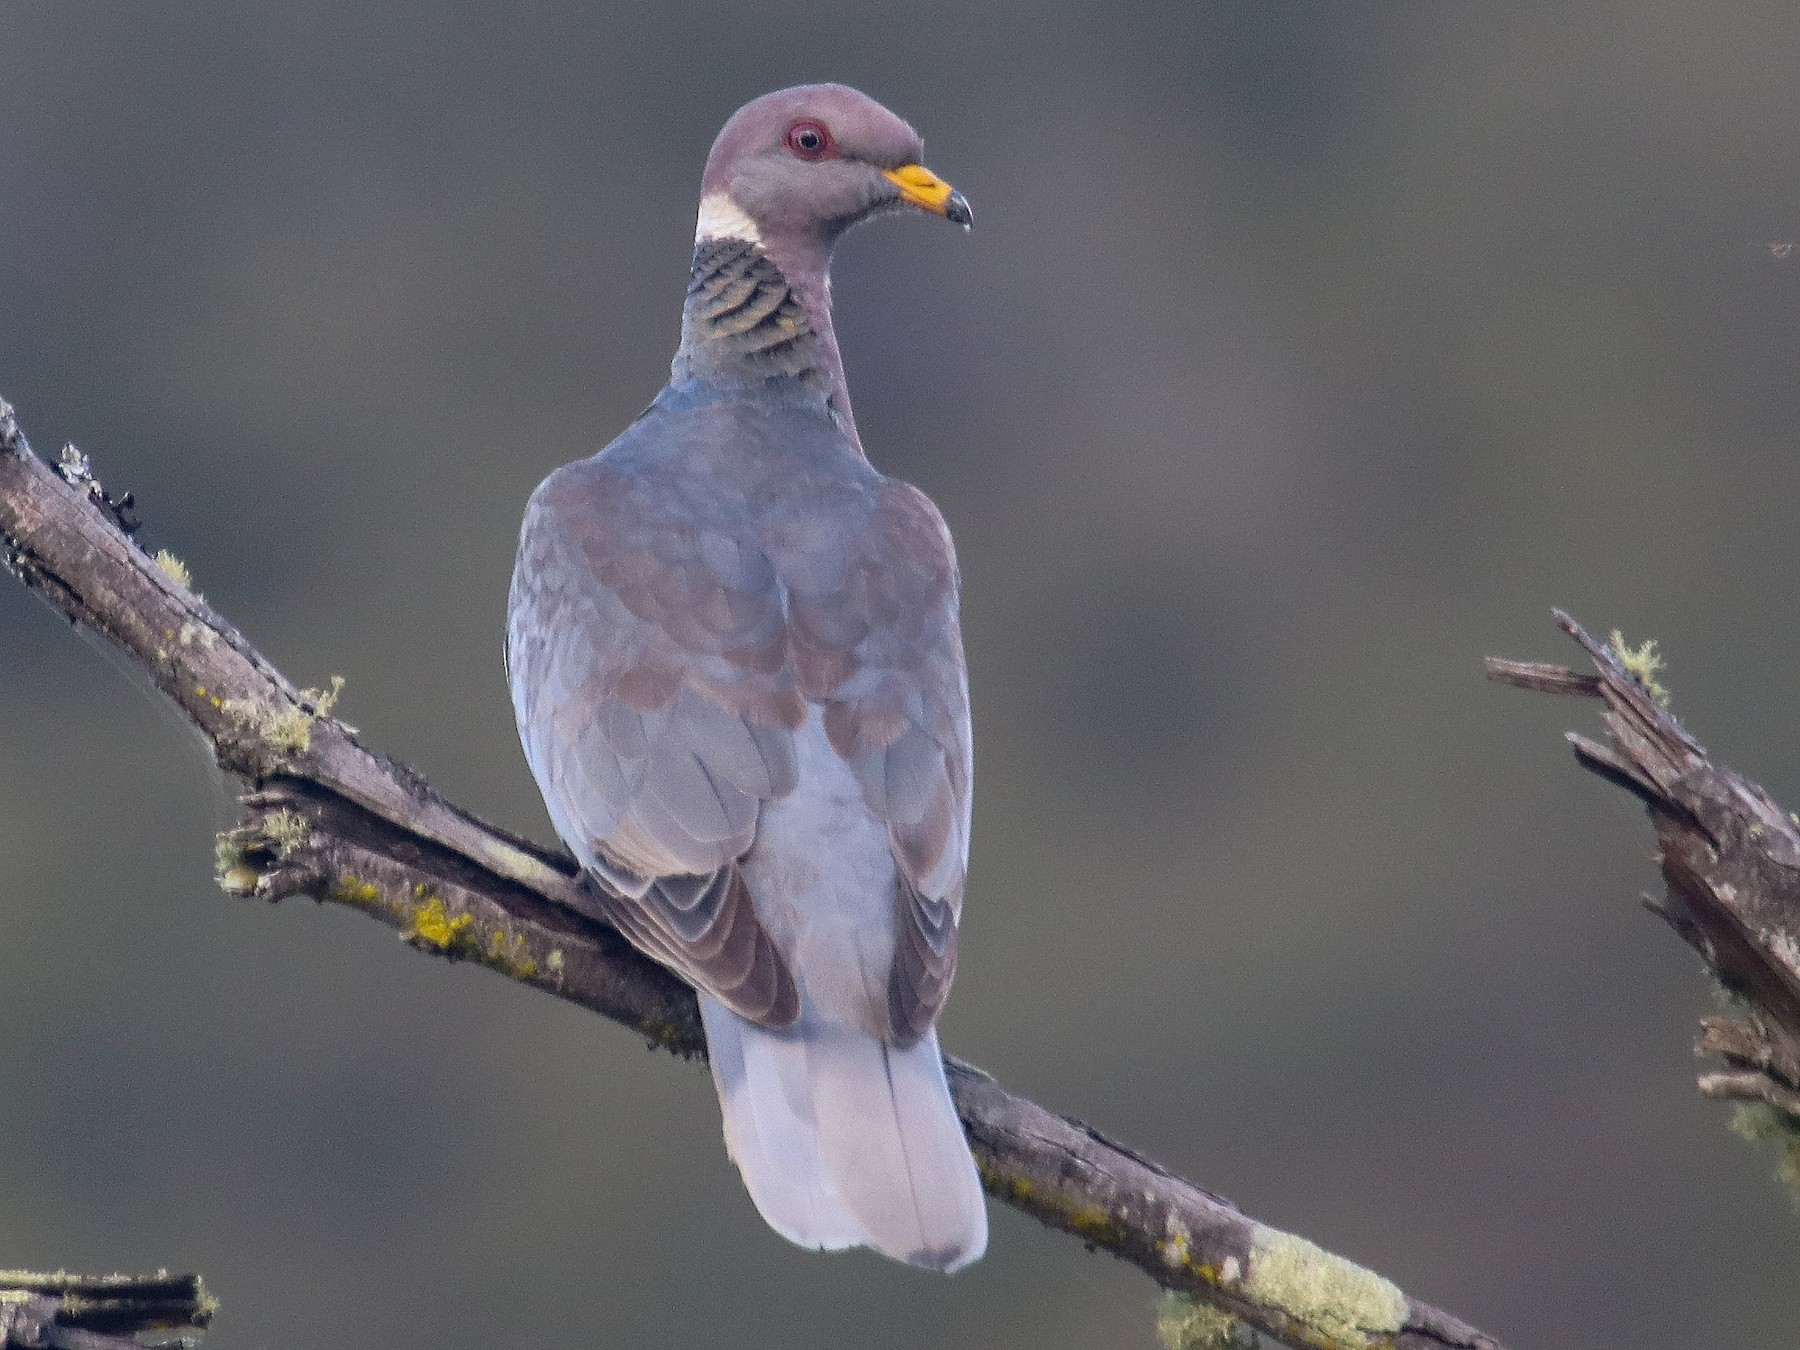 Band-tailed Pigeon - Gerardo Marrón